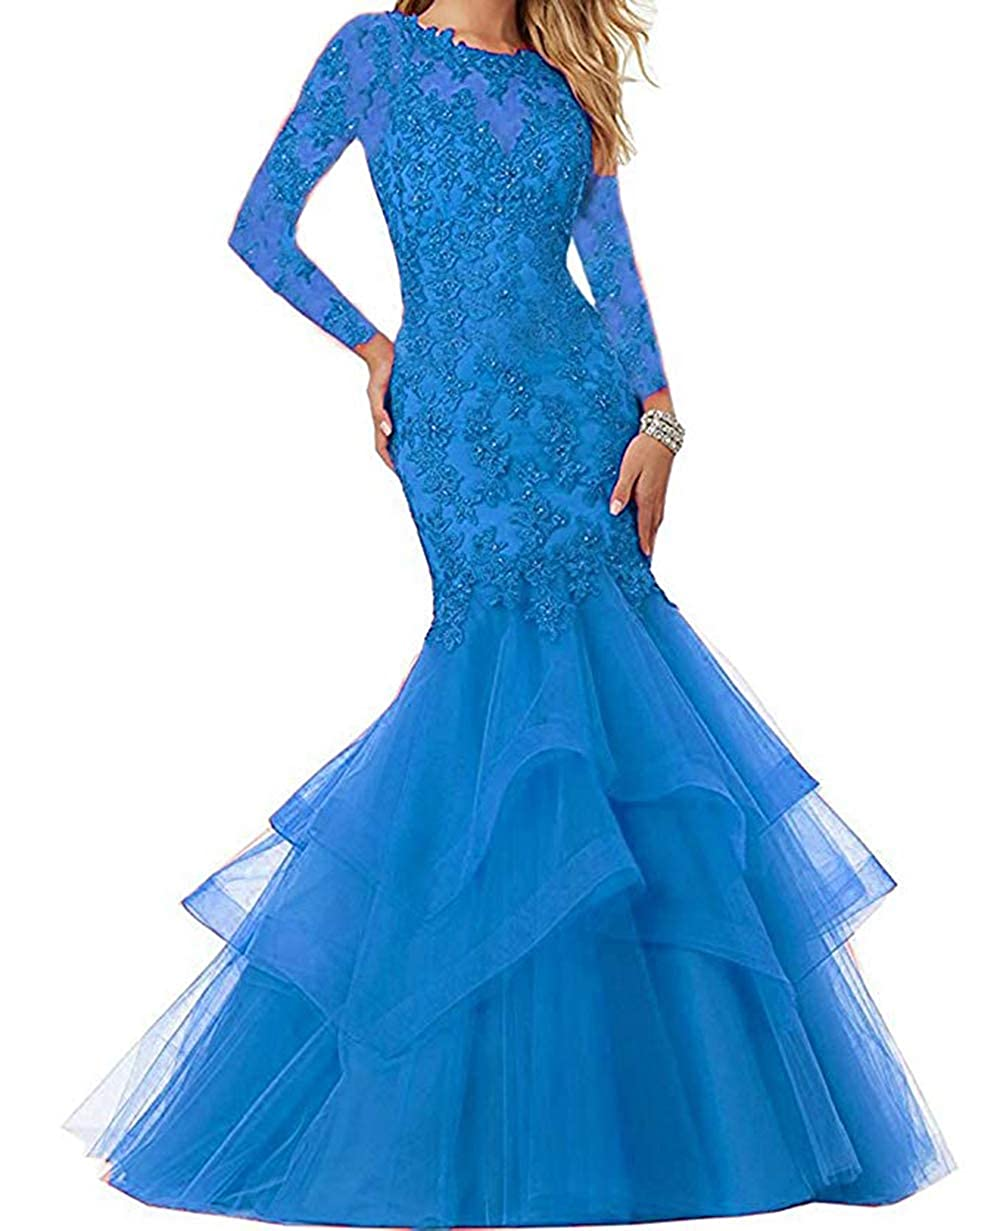 bluee Women's Mermaid Prom Dresses Beaded Lace Appliques Formal Evening Gowns Long Sleeves